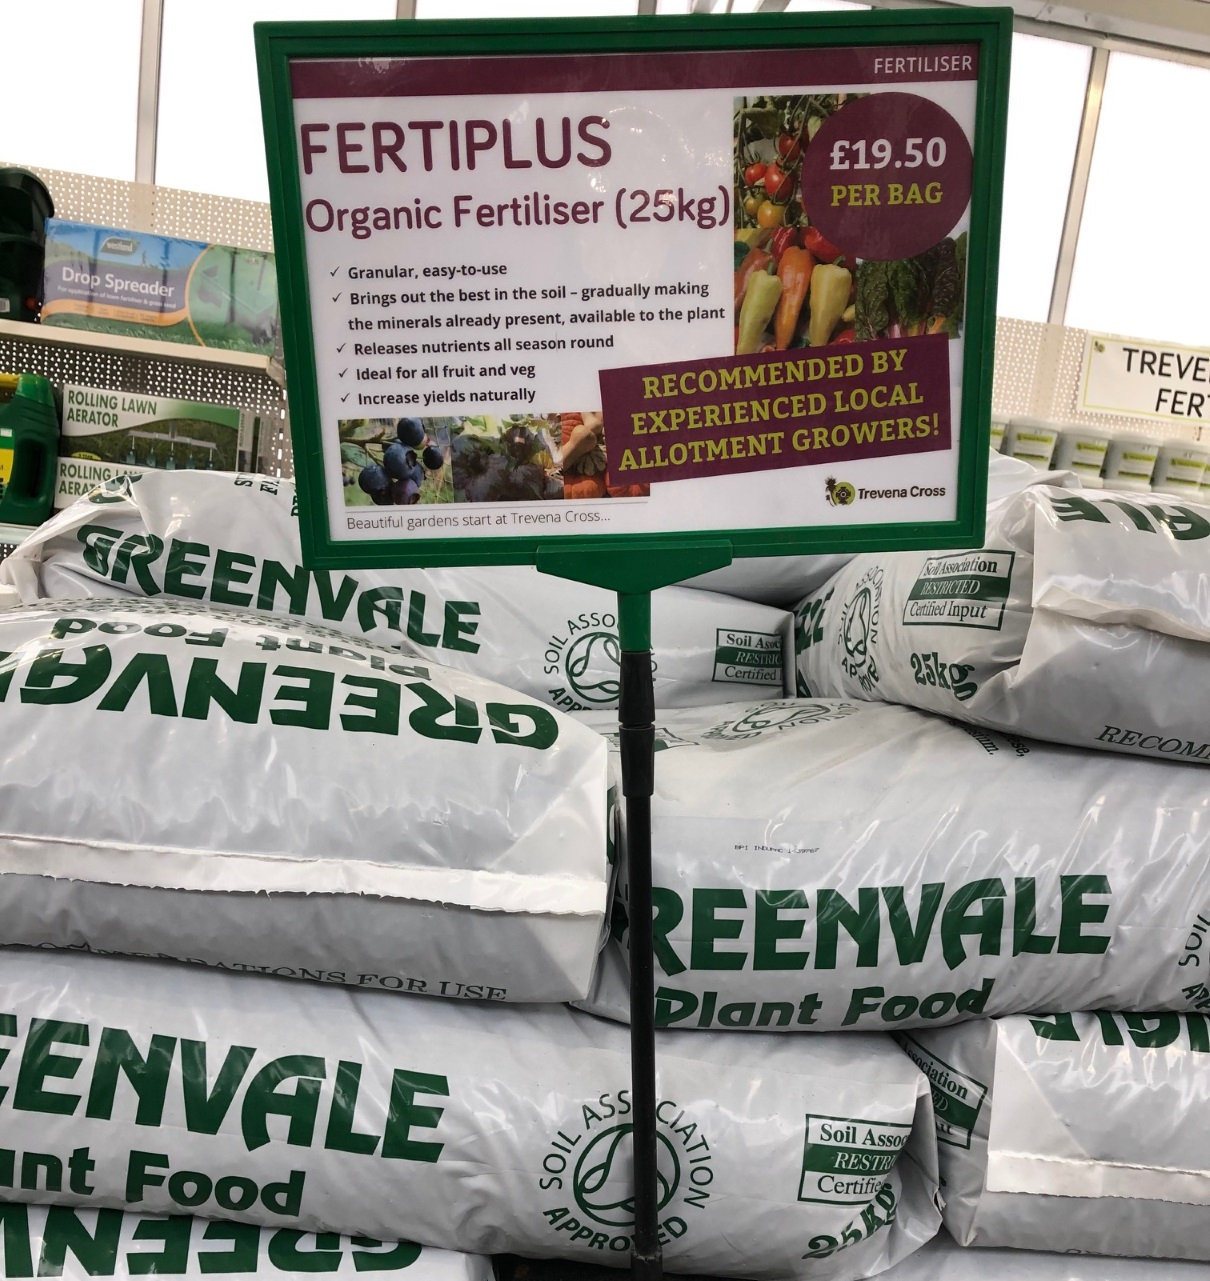 Fertiplus Fertiliser - Trevena Cross